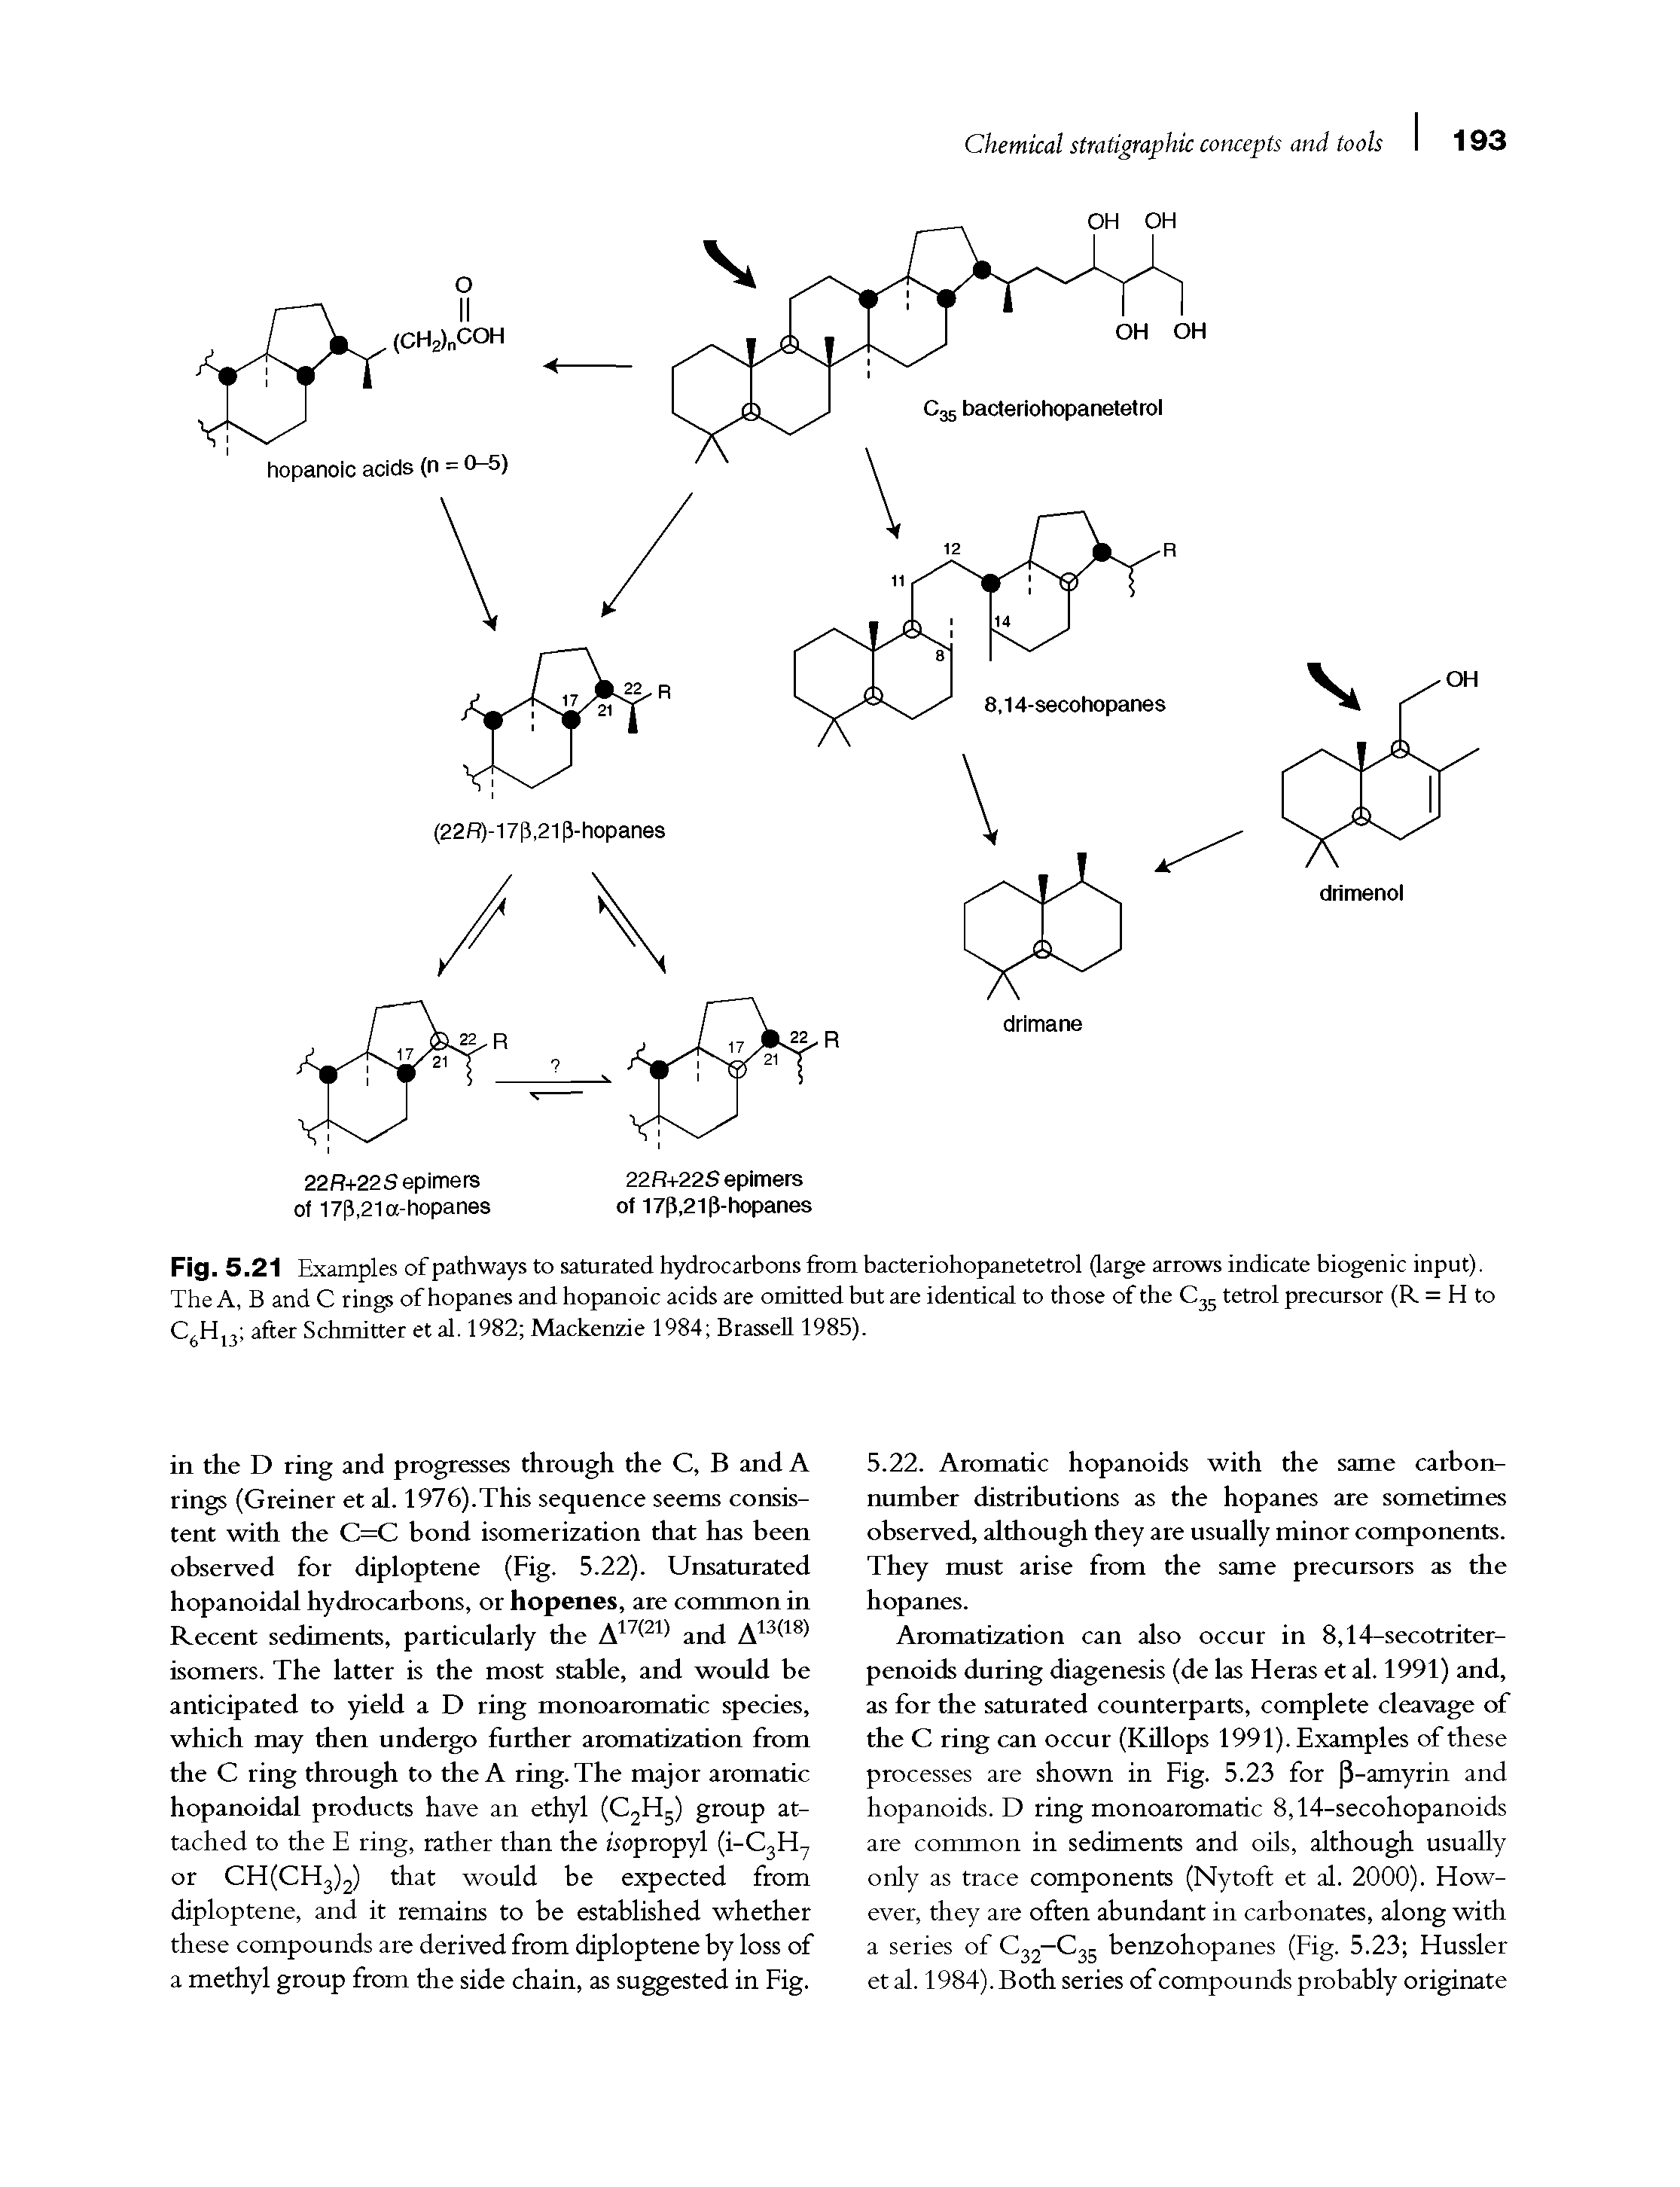 Fig. 5.21 Examples of pathways to saturated hydrocarbons from bacteriohopanetetrol (large arrows indicate biogenic input). The A, B and C rings of hopanes and hopanoic acids are omitted but are identical to those of the C35 tetrol precursor (R = H to C6H13 after Schmitter et al. 1982 Mackenzie 1984 Brassell 1985).